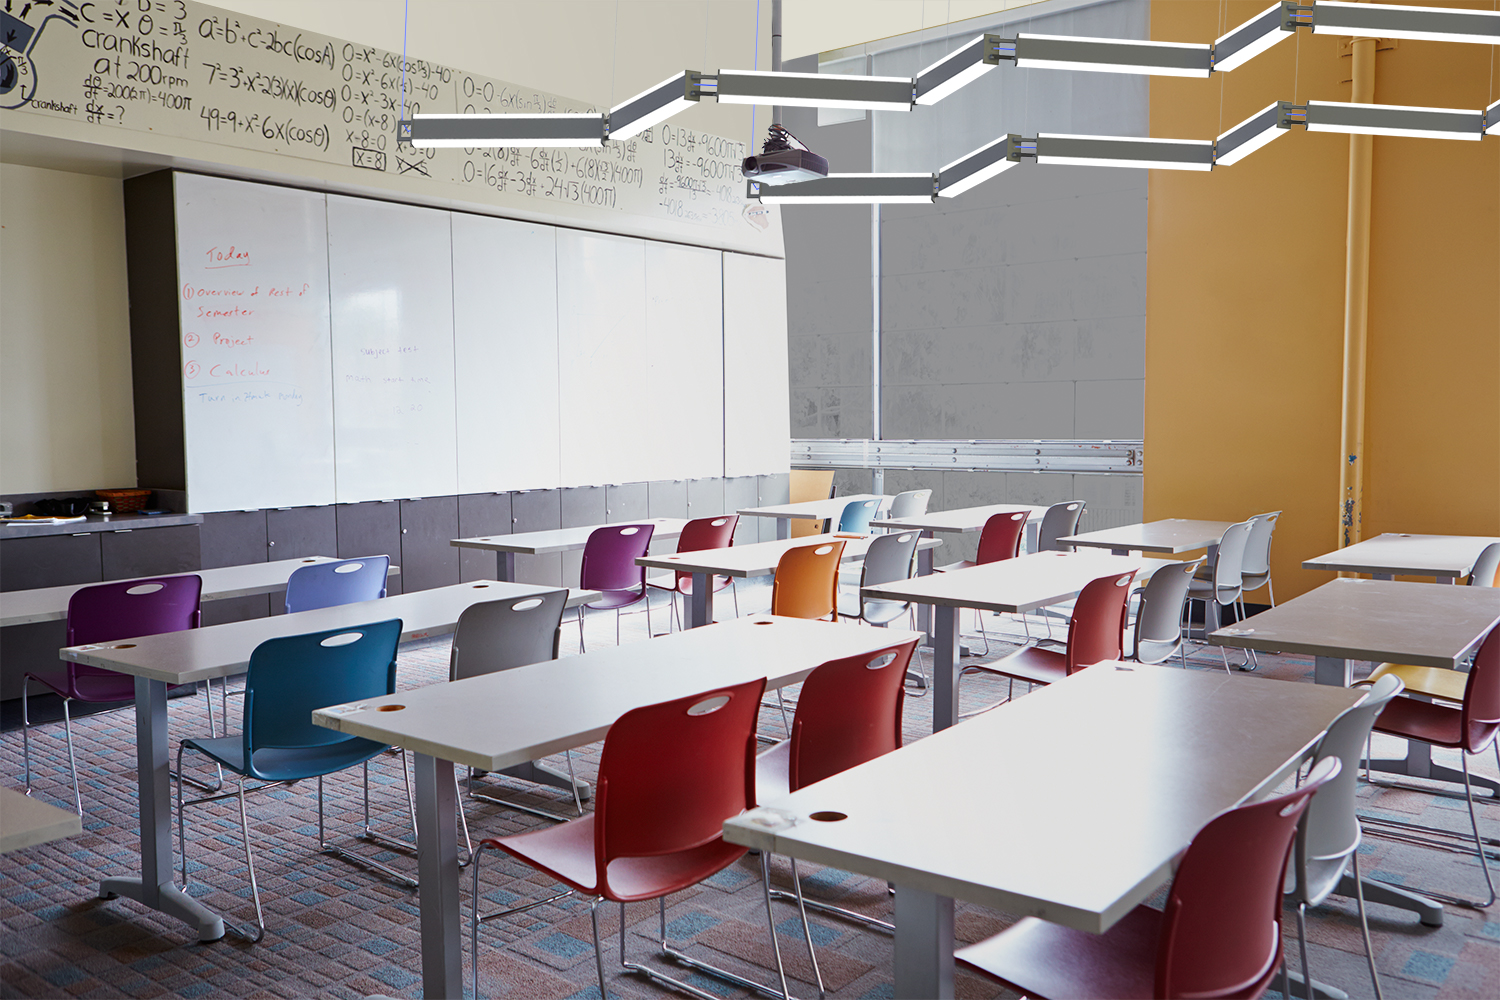 Catena linked linear pendants in white light disinfection mode in a classroom